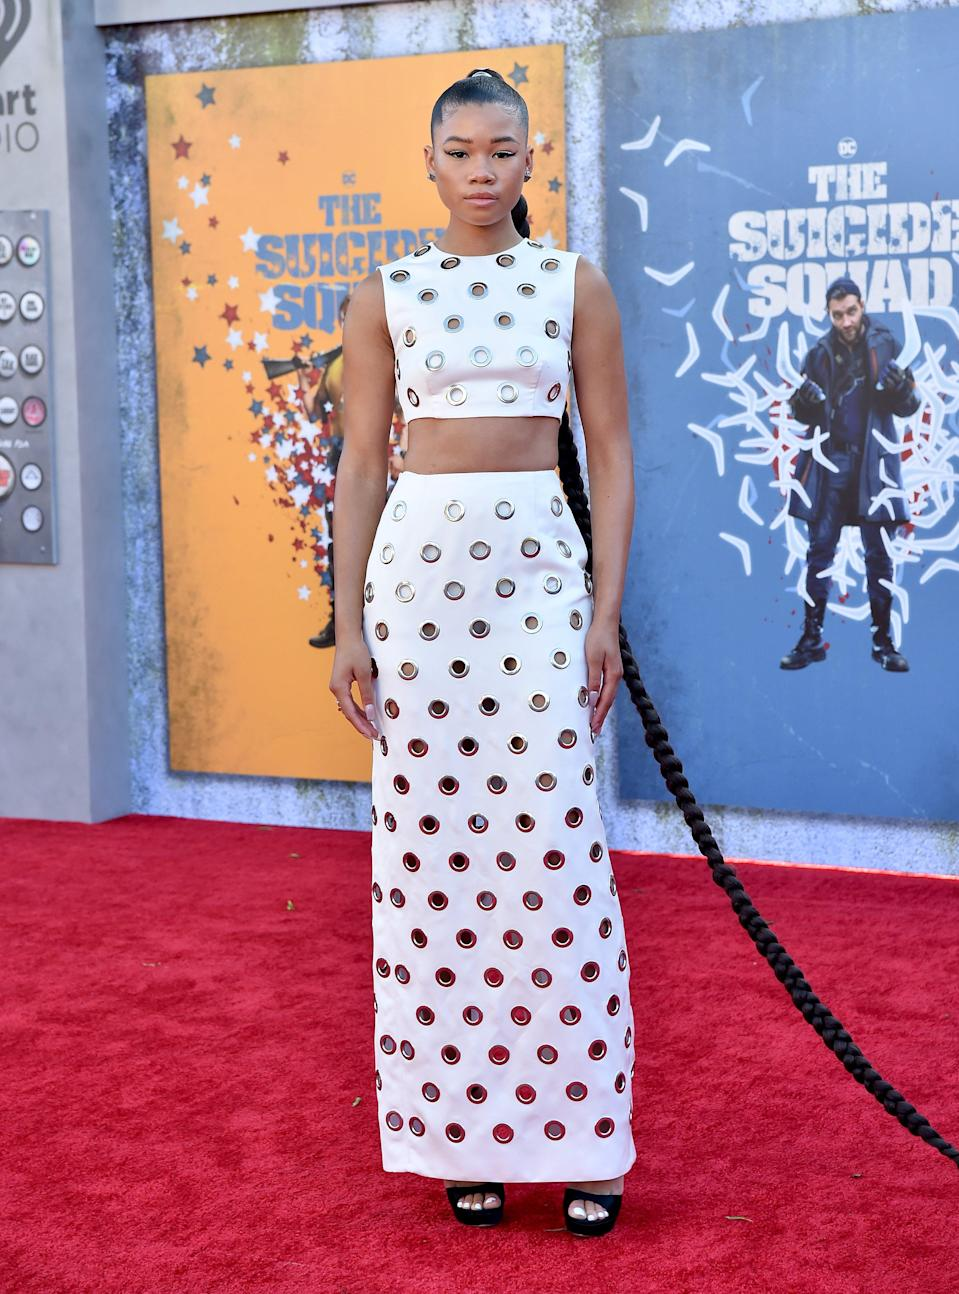 Storm Reid Is Edgy in a Peekaboo Prada Crop Top & Skirt With Towering Platforms at 'Suicide Squad' Premiere